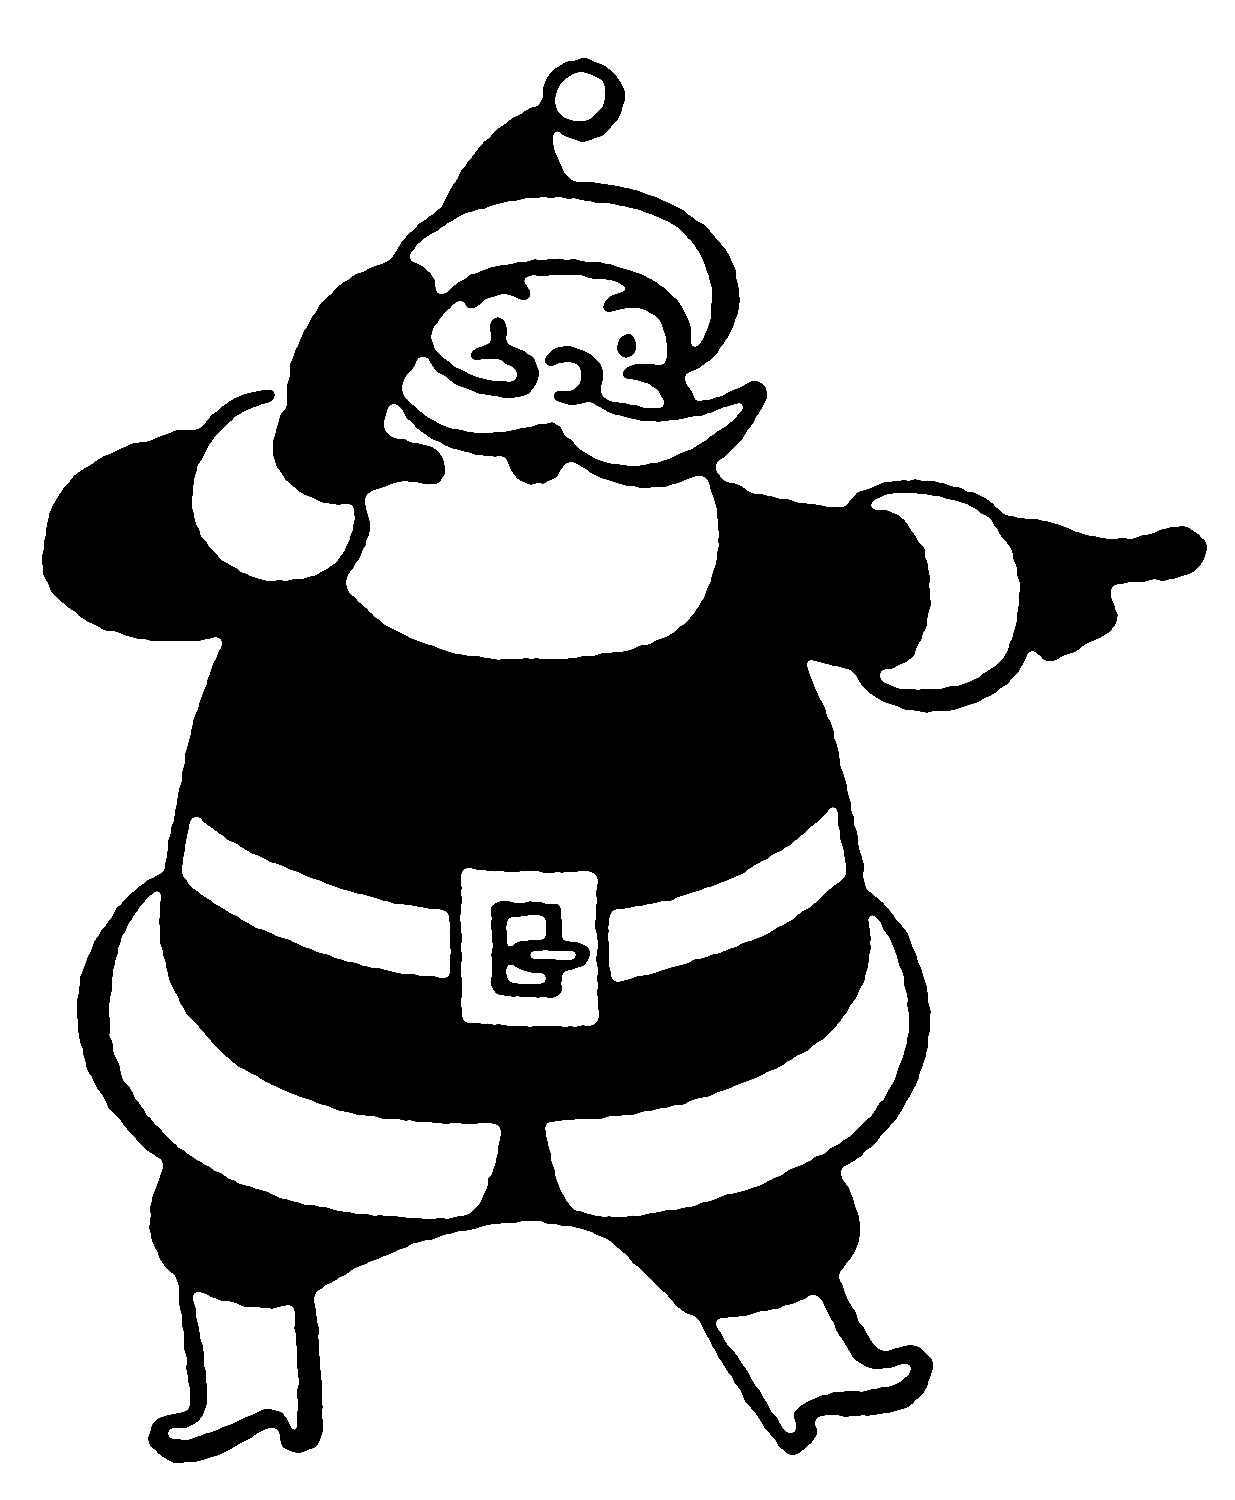 retro christmas clip art funny santas the graphics fairy rh thegraphicsfairy com santa face clipart black and white santa face clipart black and white